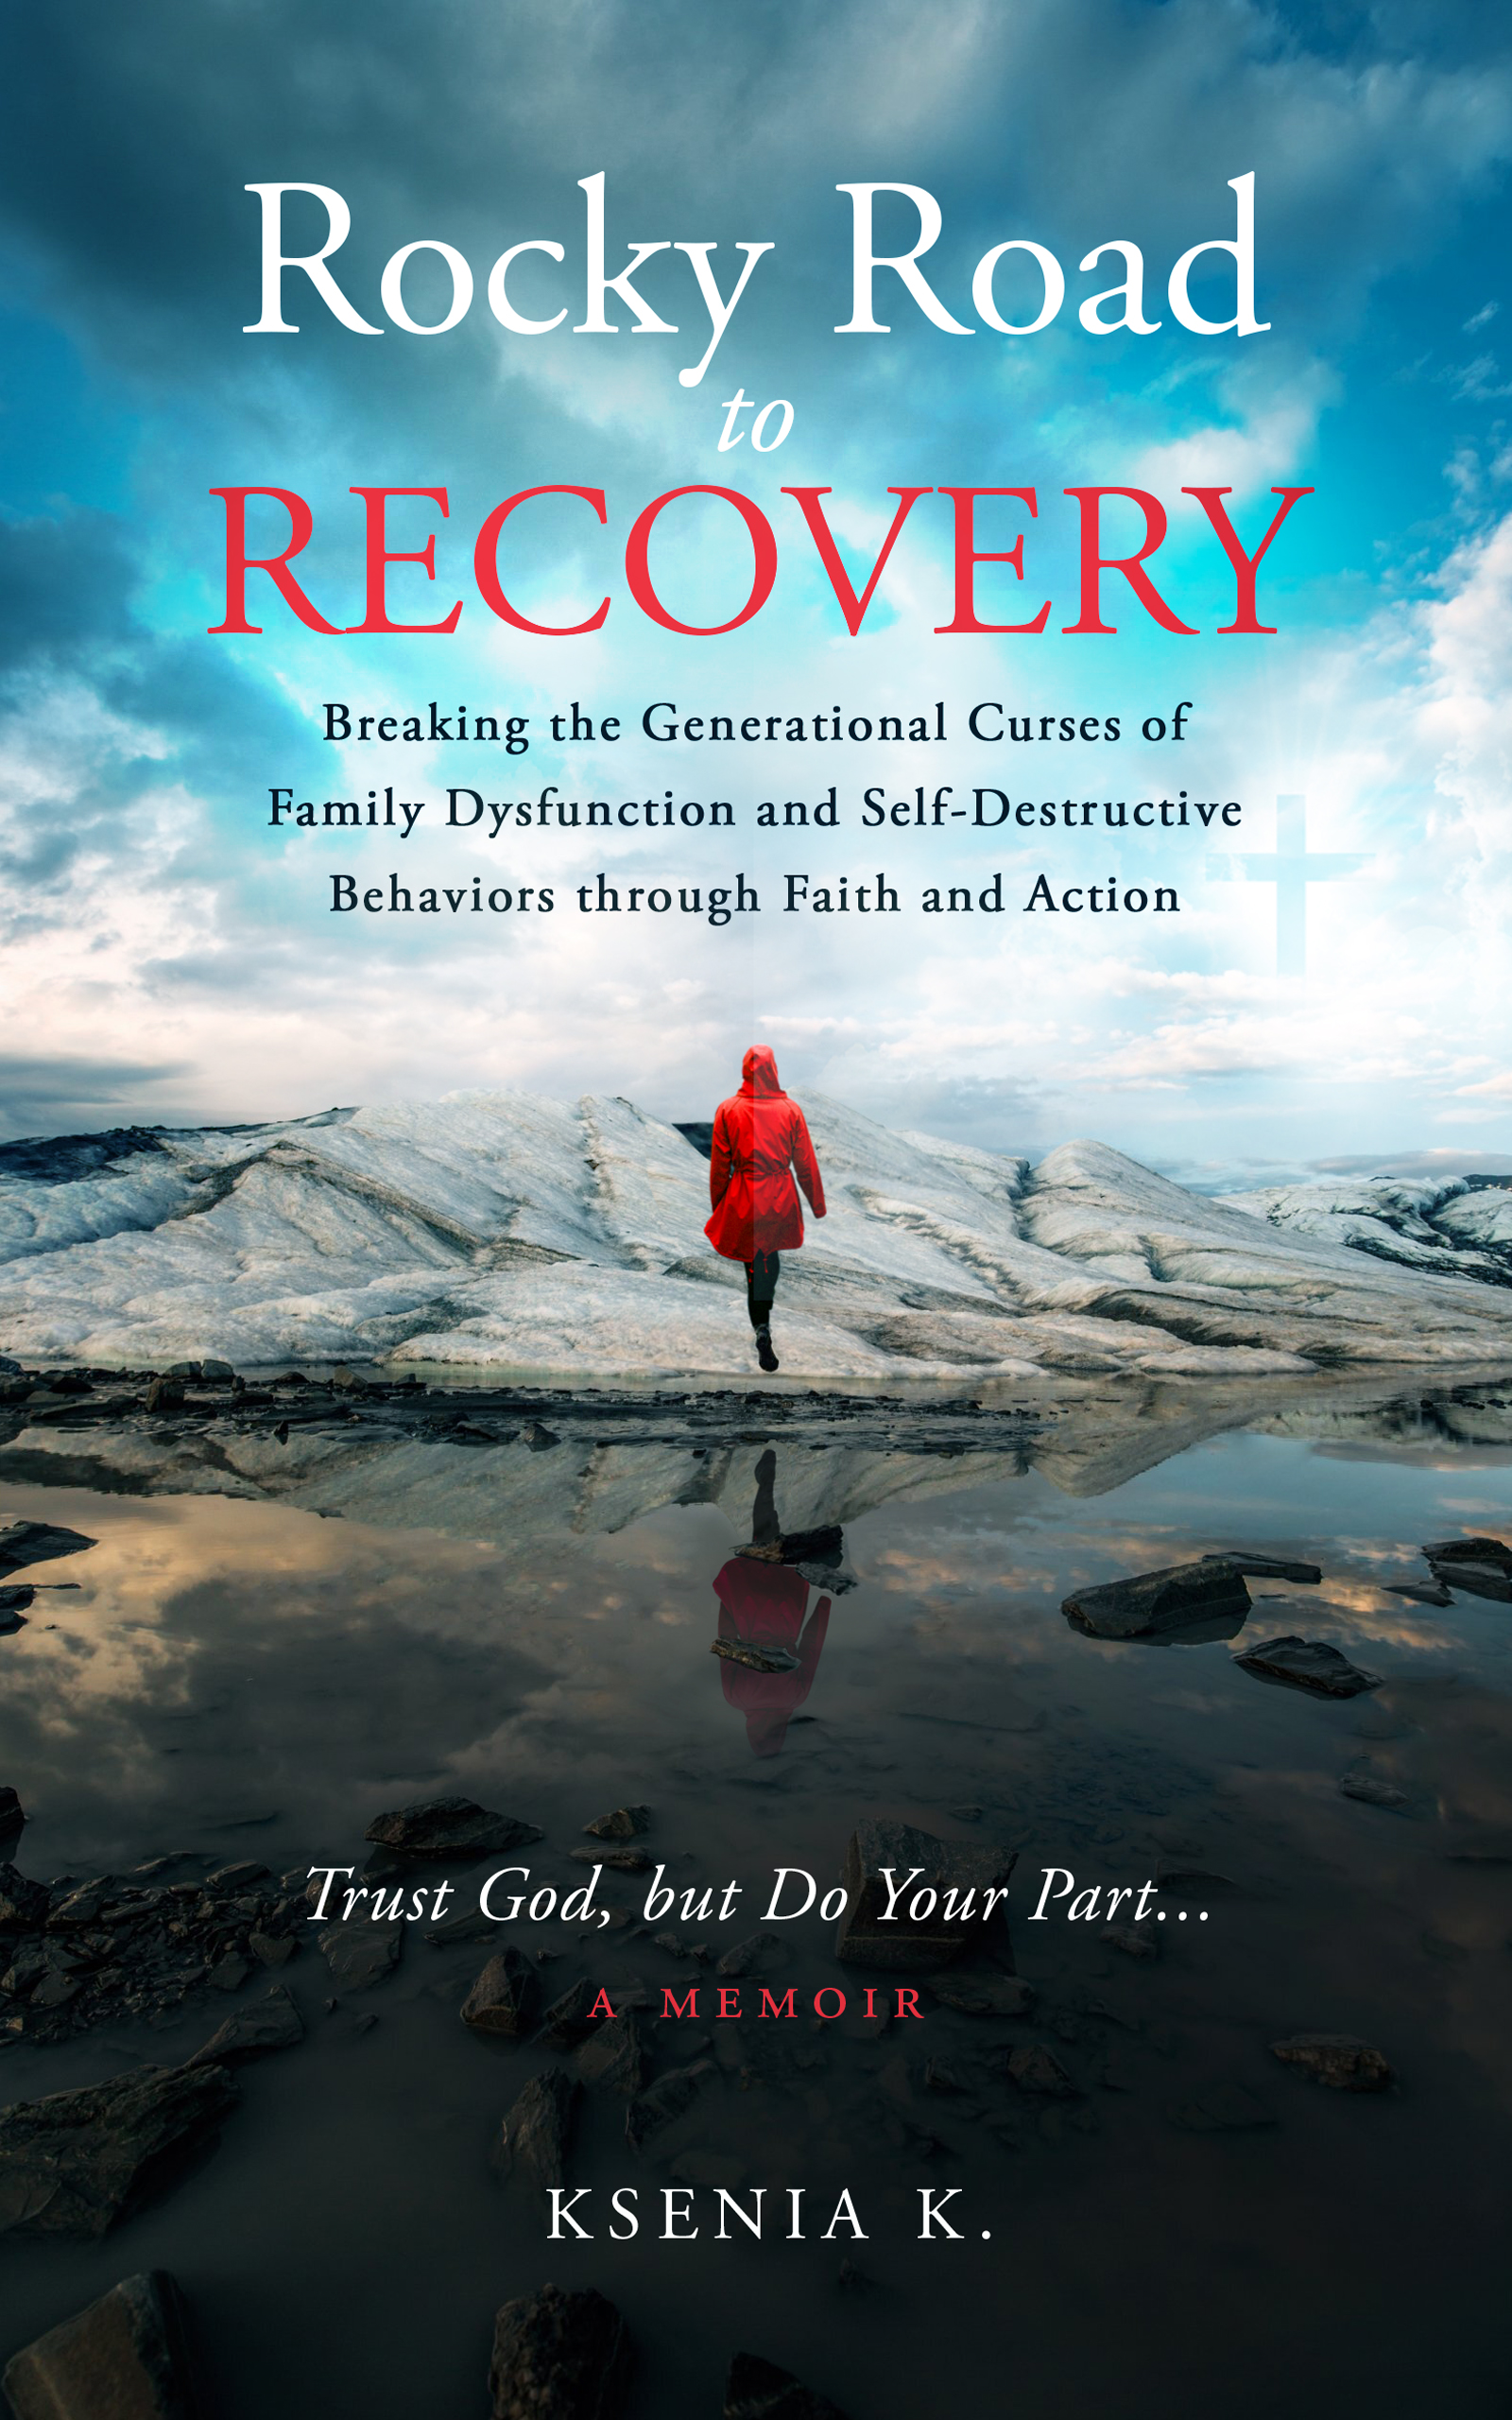 Rocky Road to Recovery Excerpt